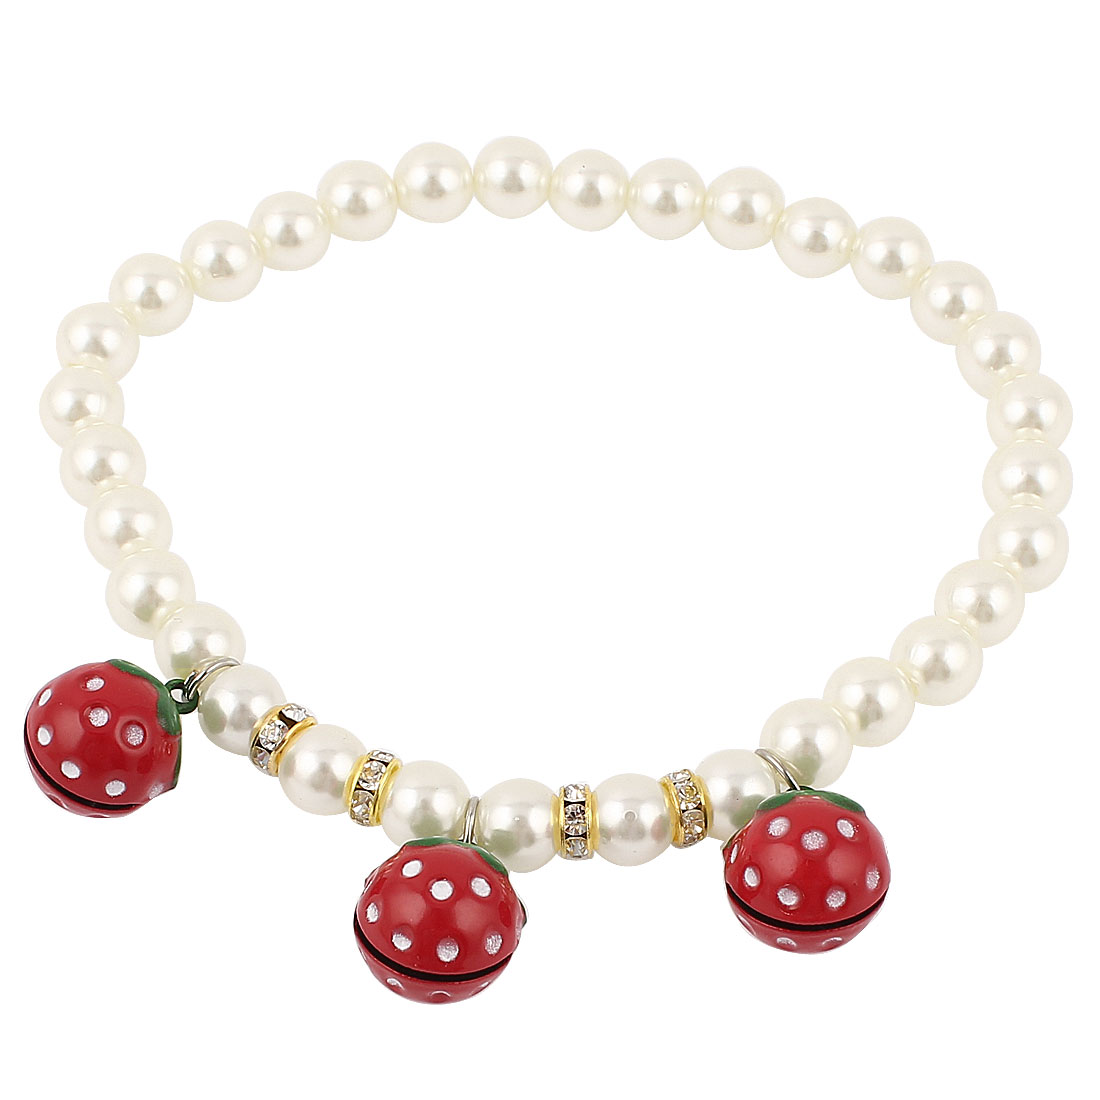 Metal Bell Pendant Rhinestions Accent Pet Plastic Beads Imitation Pearls Collar Necklace White Red M